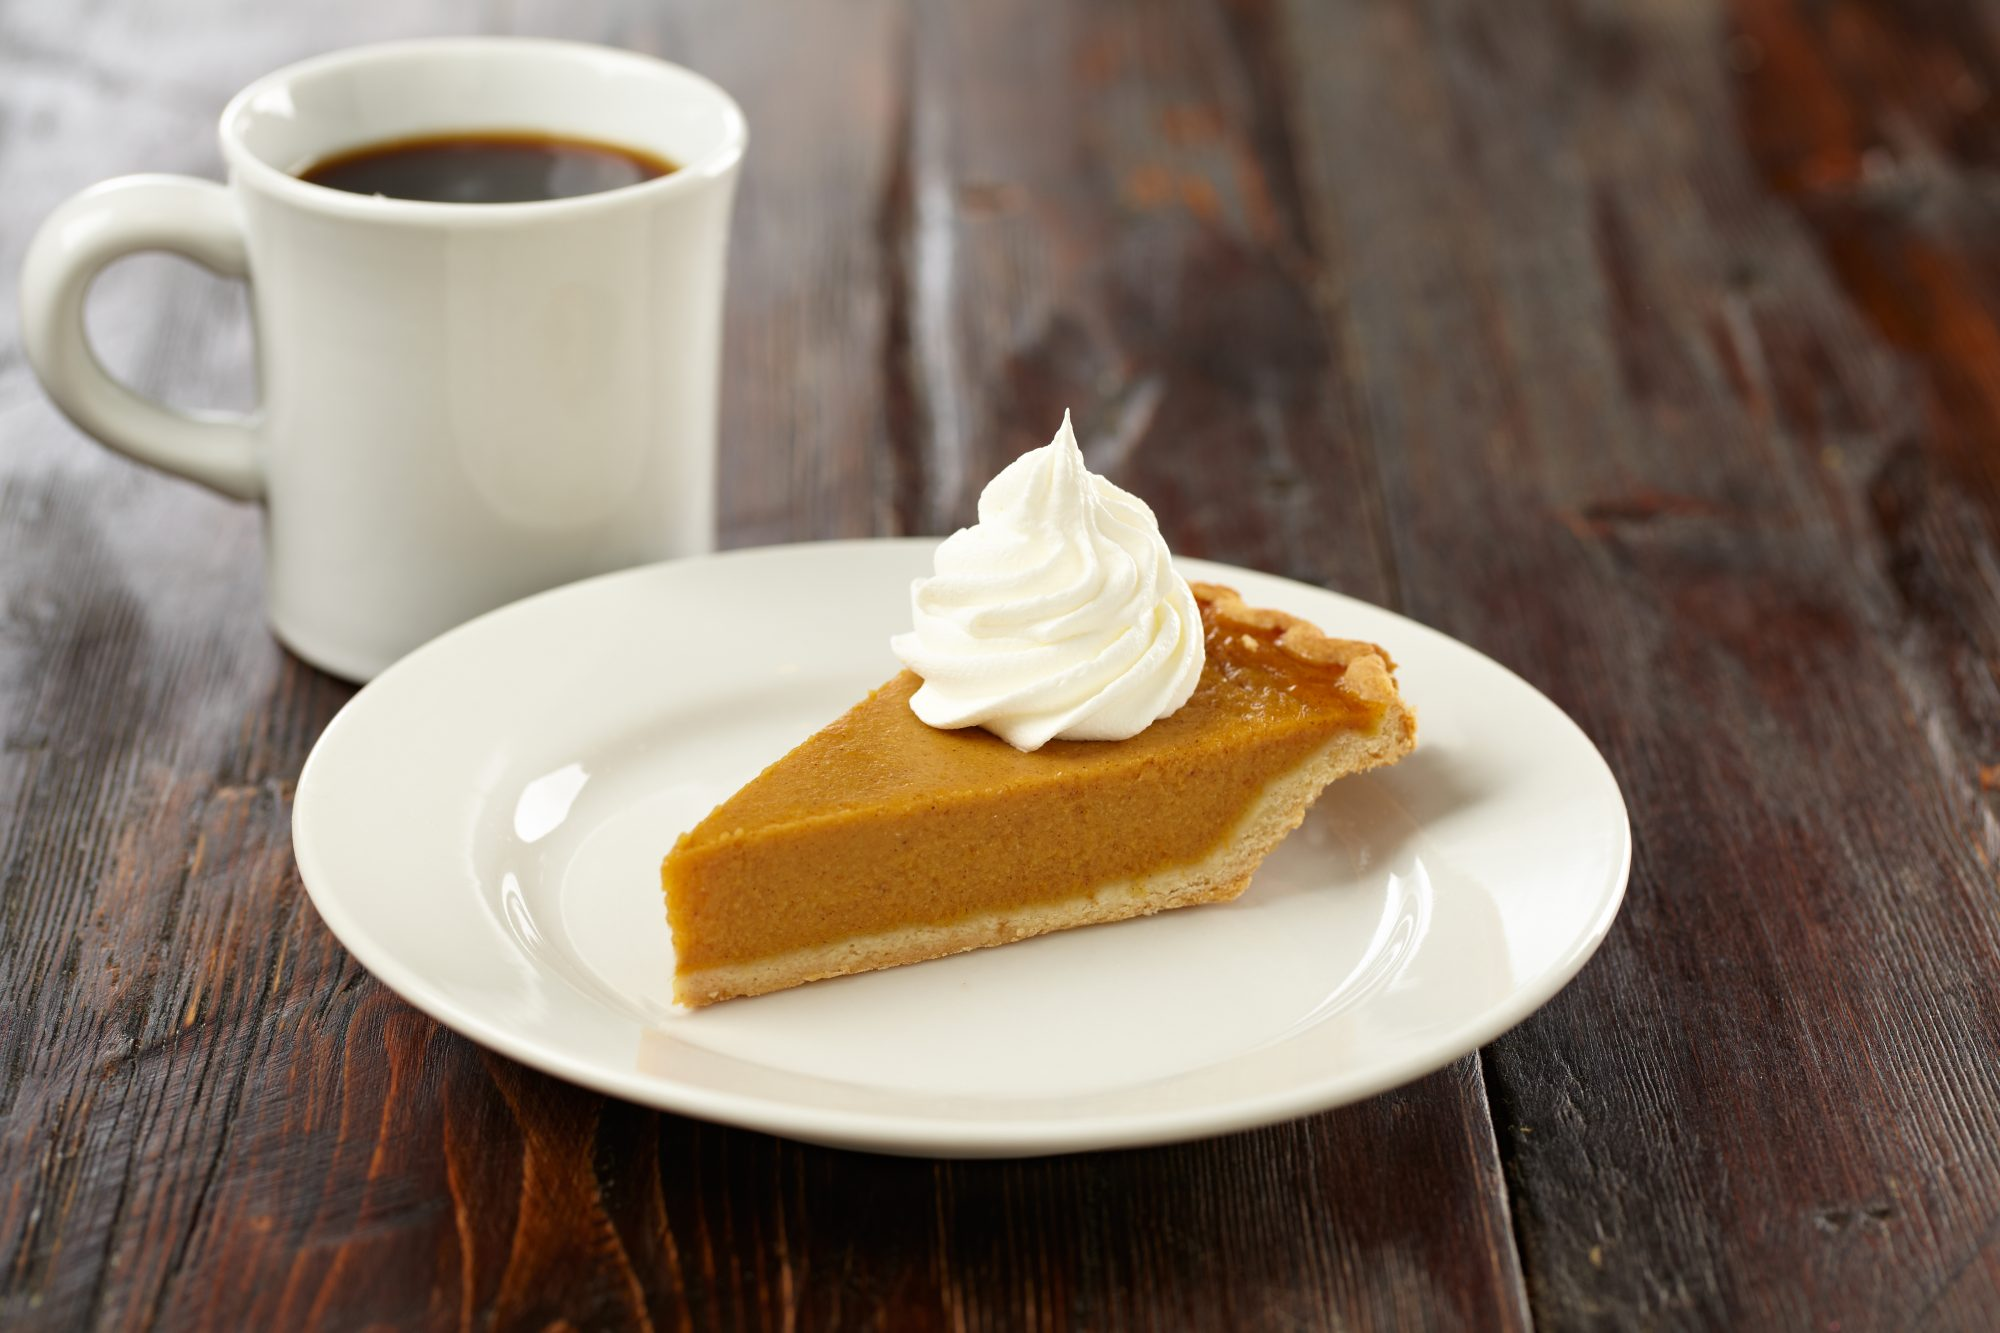 Thanksgiving-Pumpkin pie-GettyImages-187293420.jpg